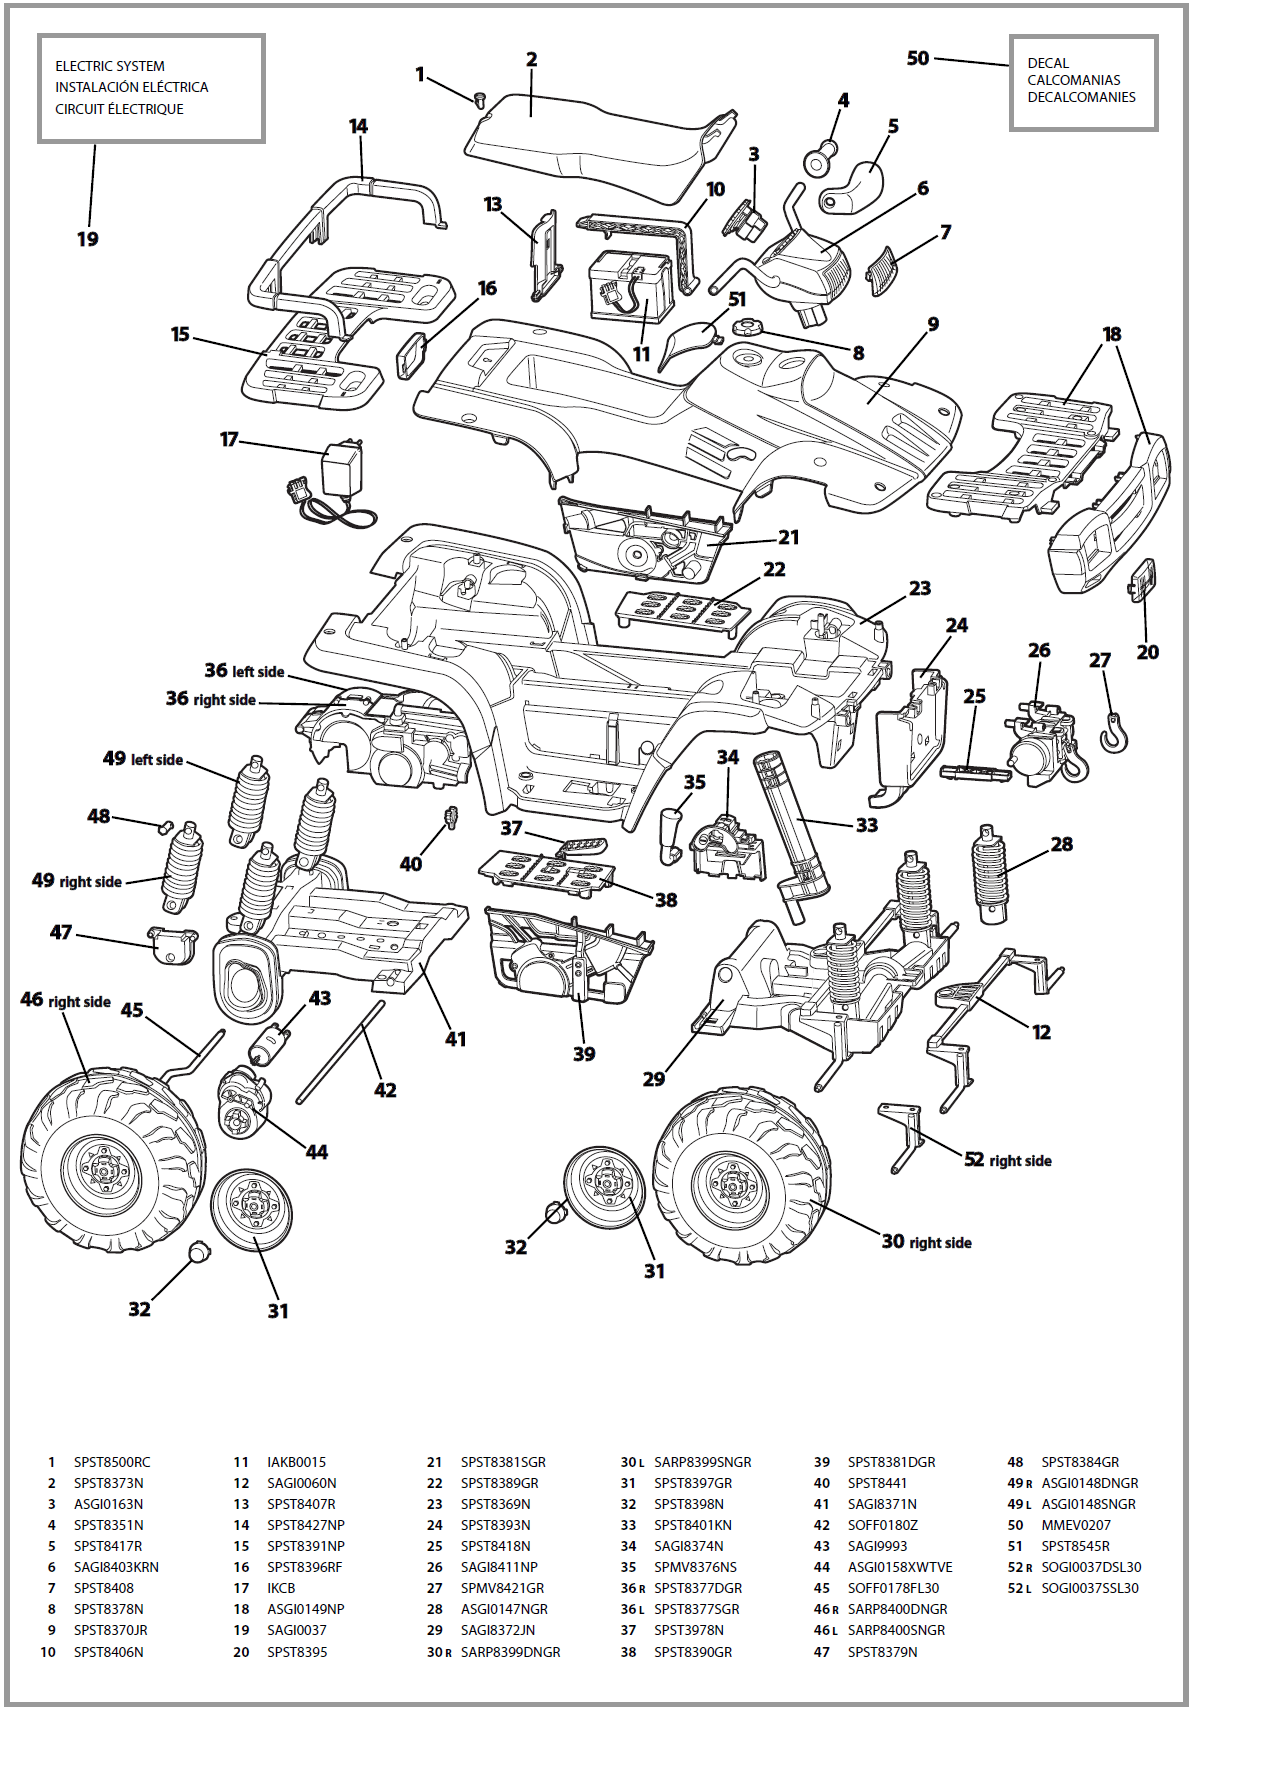 2002 Polaris Sportsman 700 Wiring Diagram. Diagram. Wiring